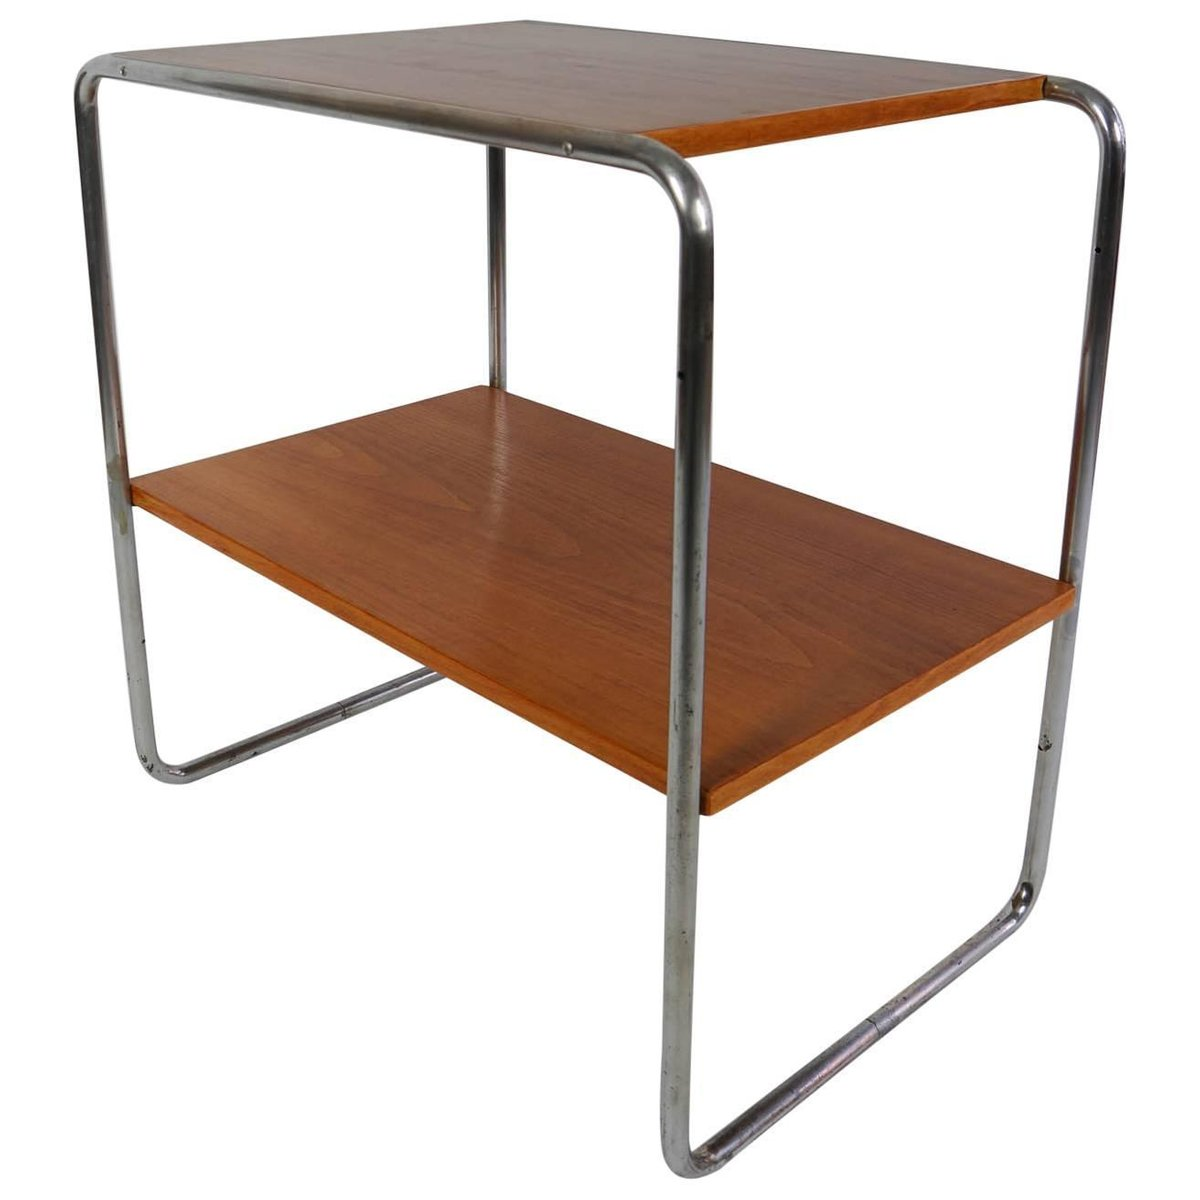 vintage bauhaus console table by marcel breuer for sale at pamono. Black Bedroom Furniture Sets. Home Design Ideas